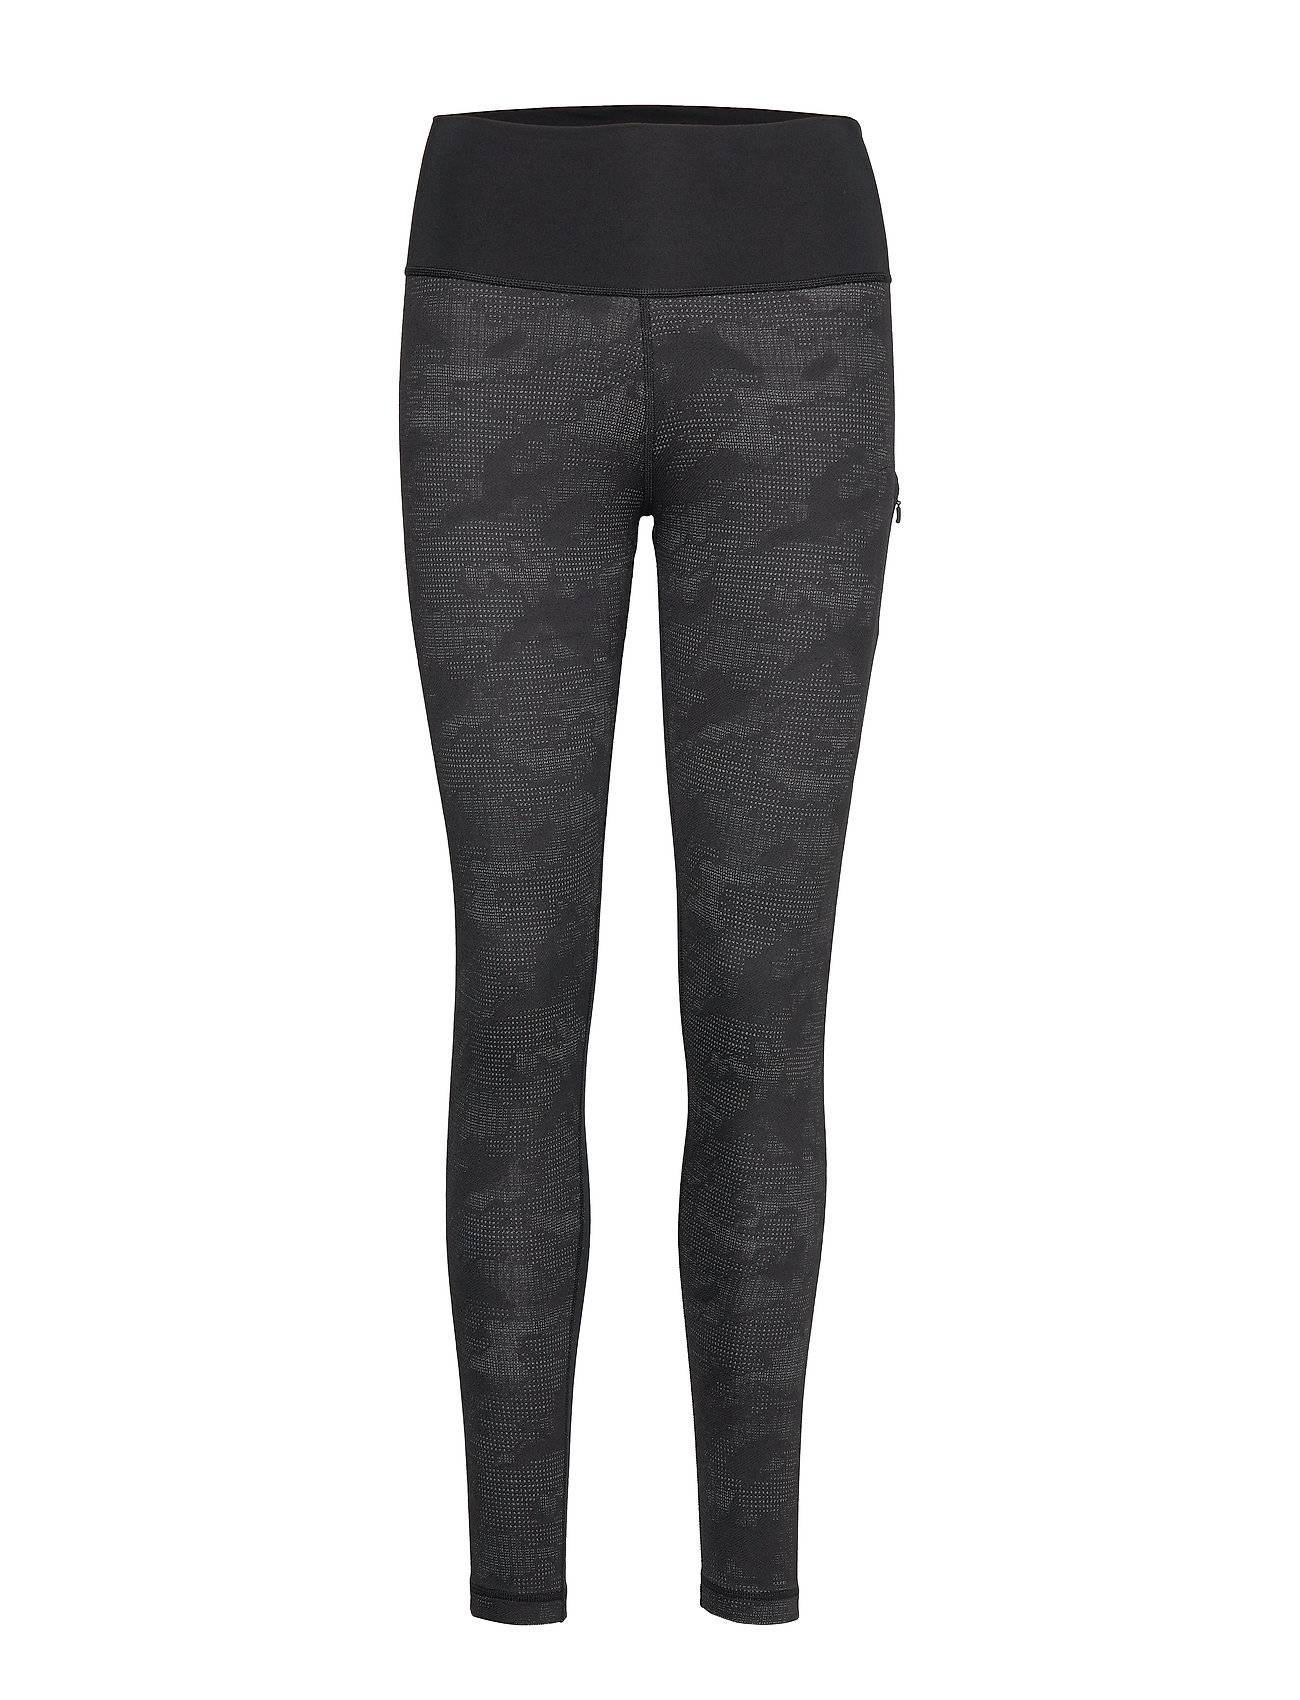 Image of adidas Performance Bt Hr L Camo T Running/training Tights Musta Adidas Performance